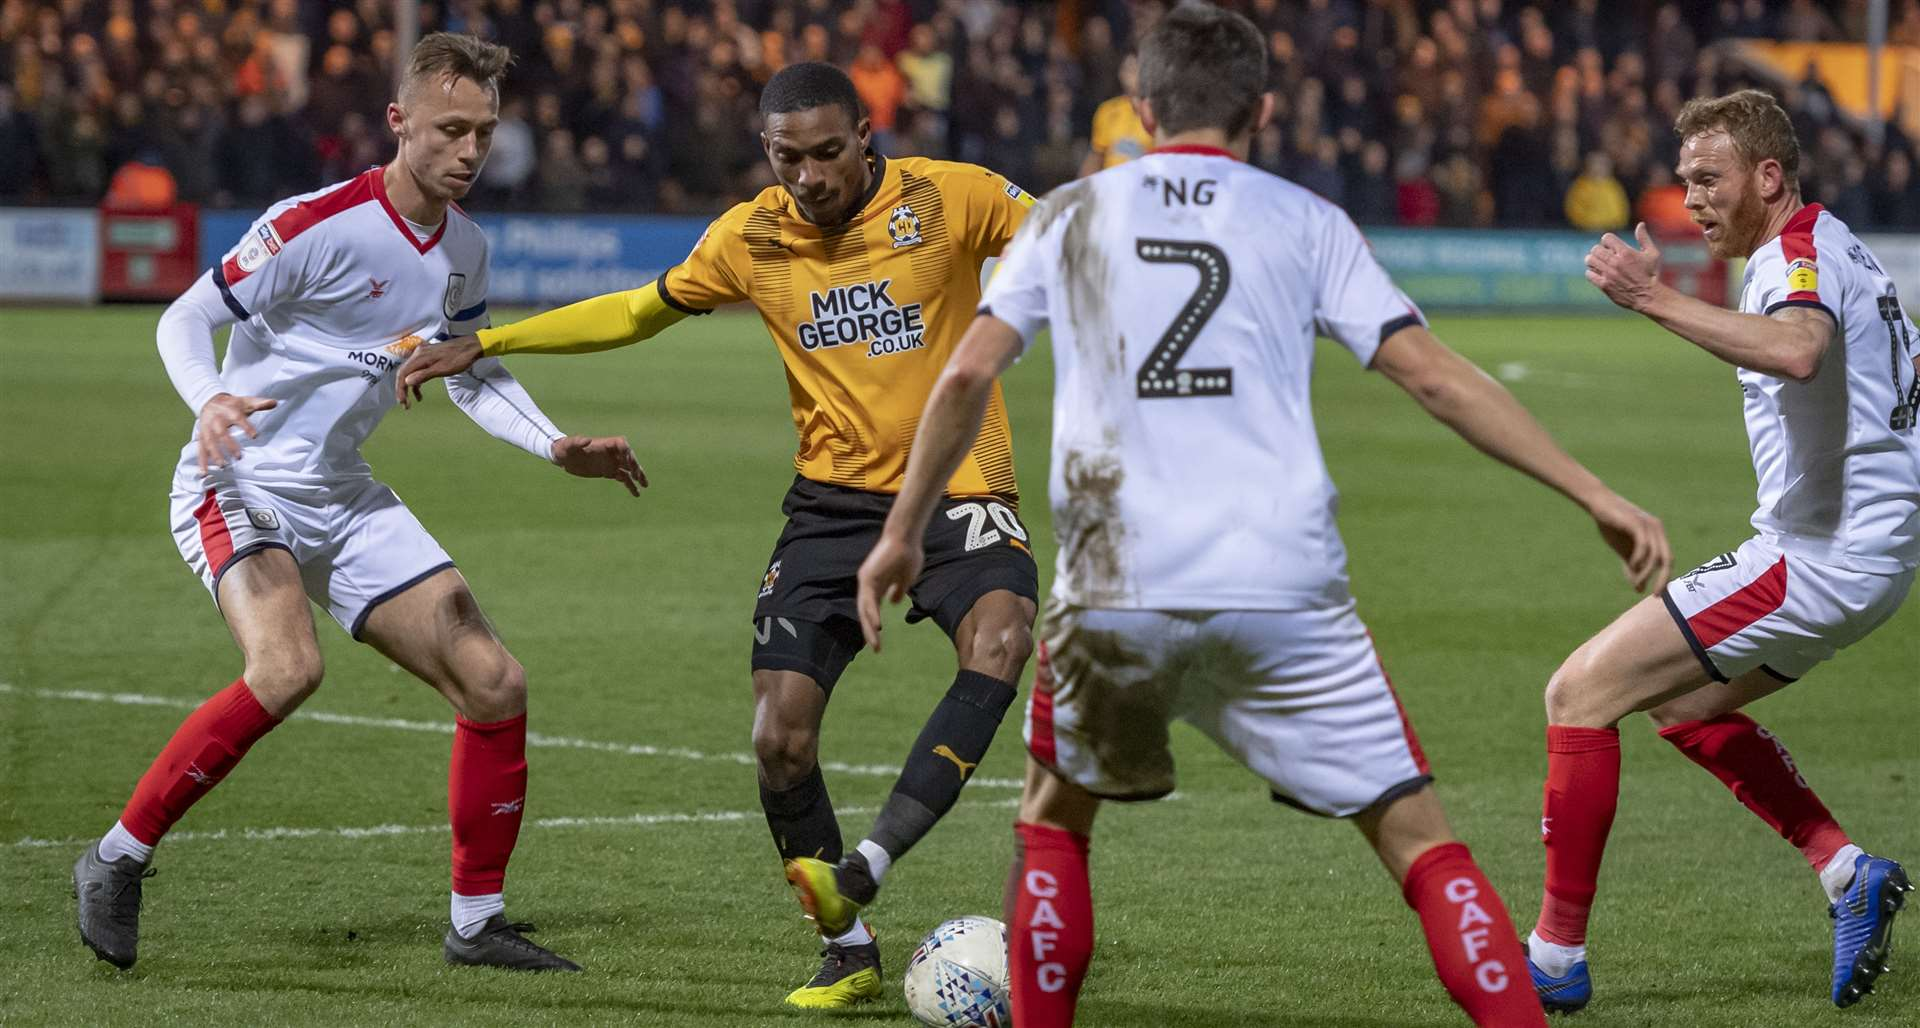 Cambridge United's Jevani Brown in action against Crewe Alexandra. Picture: Keith Heppell